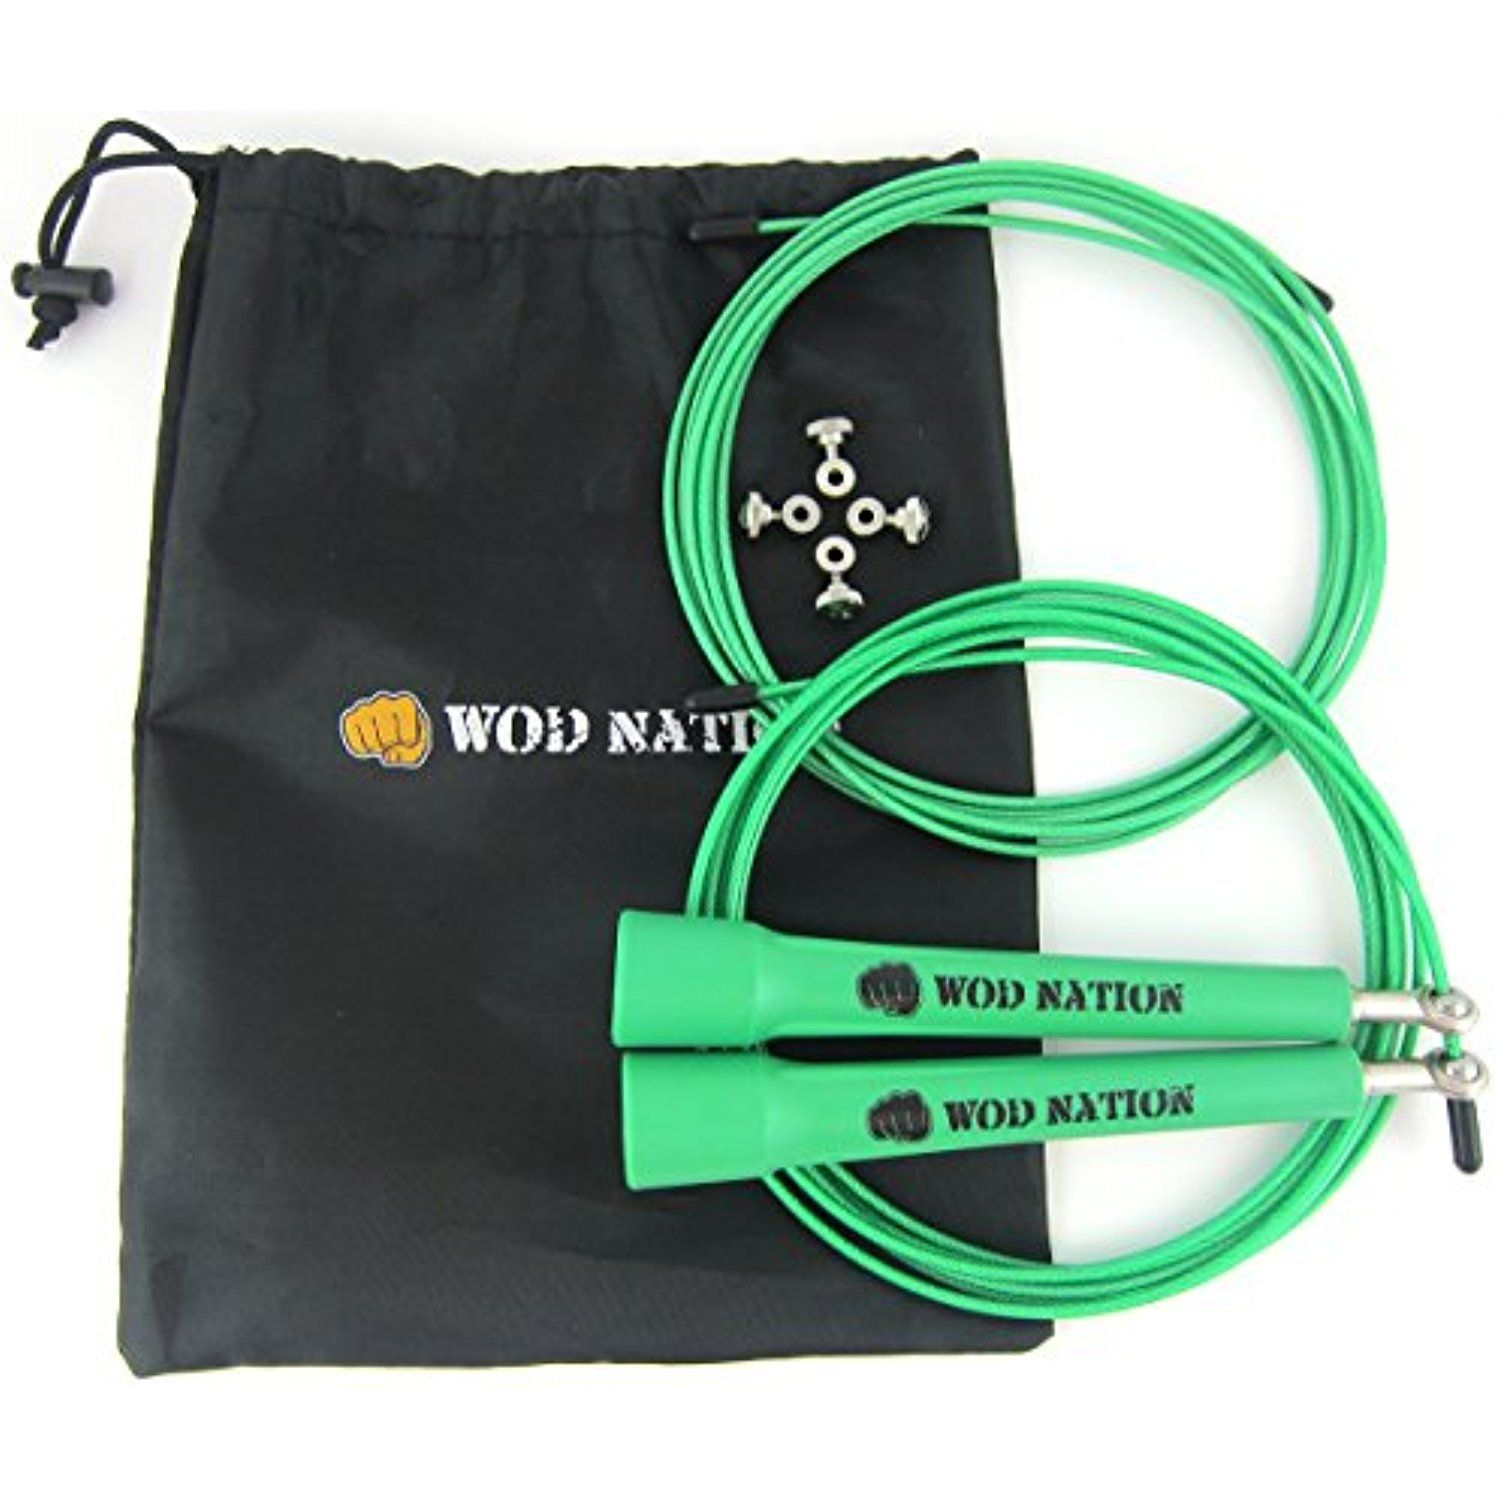 Adjustable for Cardio Fitness /& Speed Endurance Training Choose from 5 Jump Rope Styles